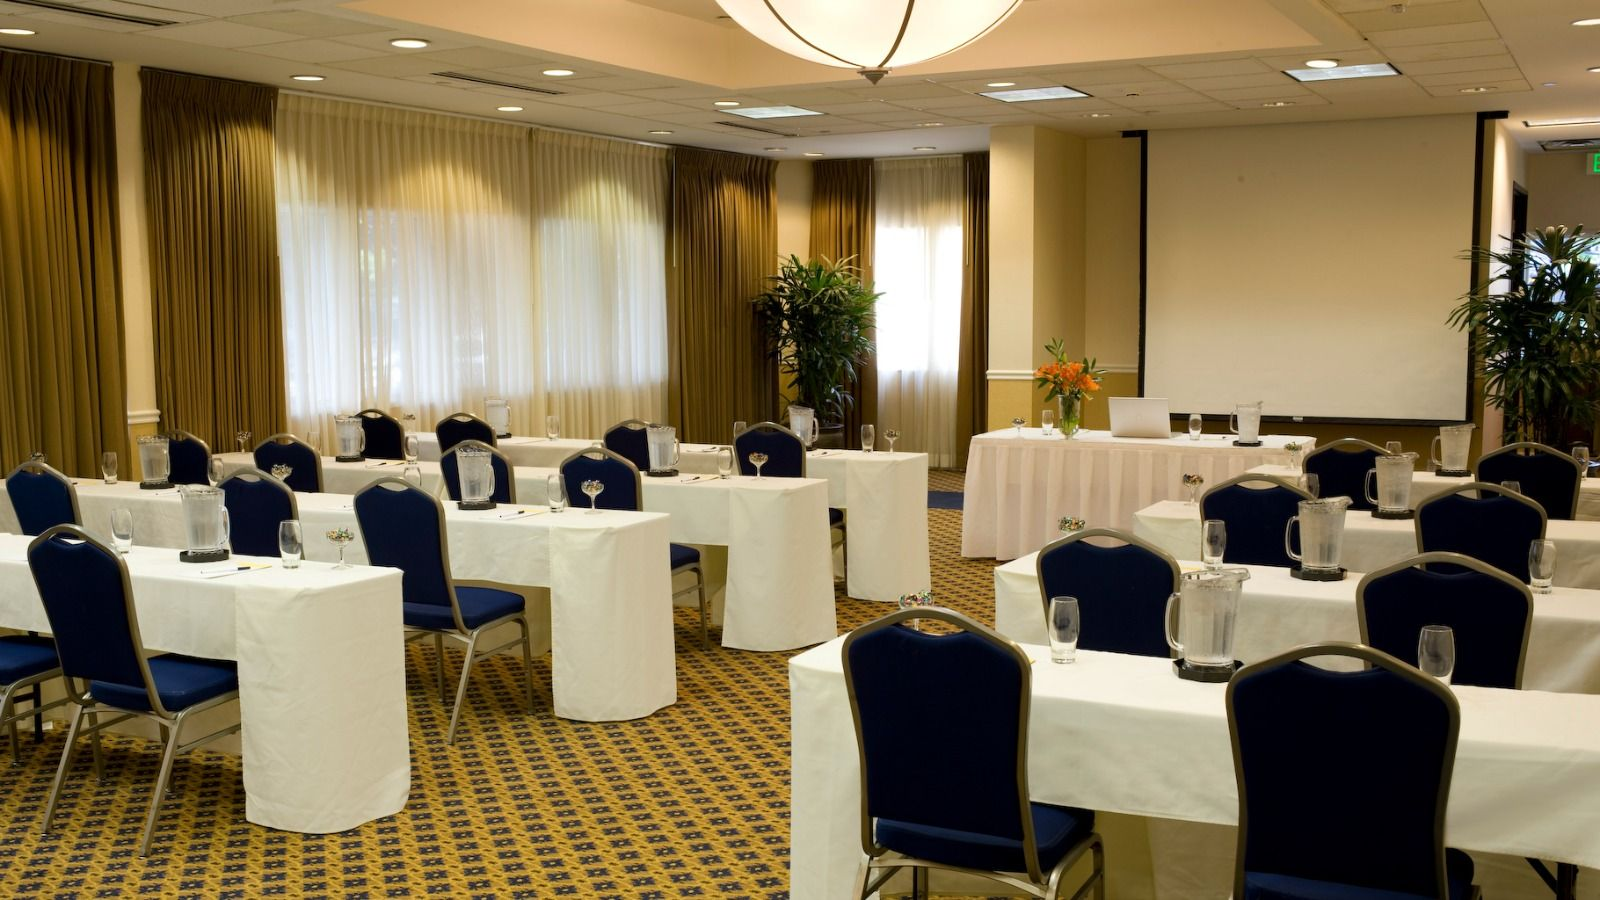 Meeting Space in Bellevue - Phoenix Room